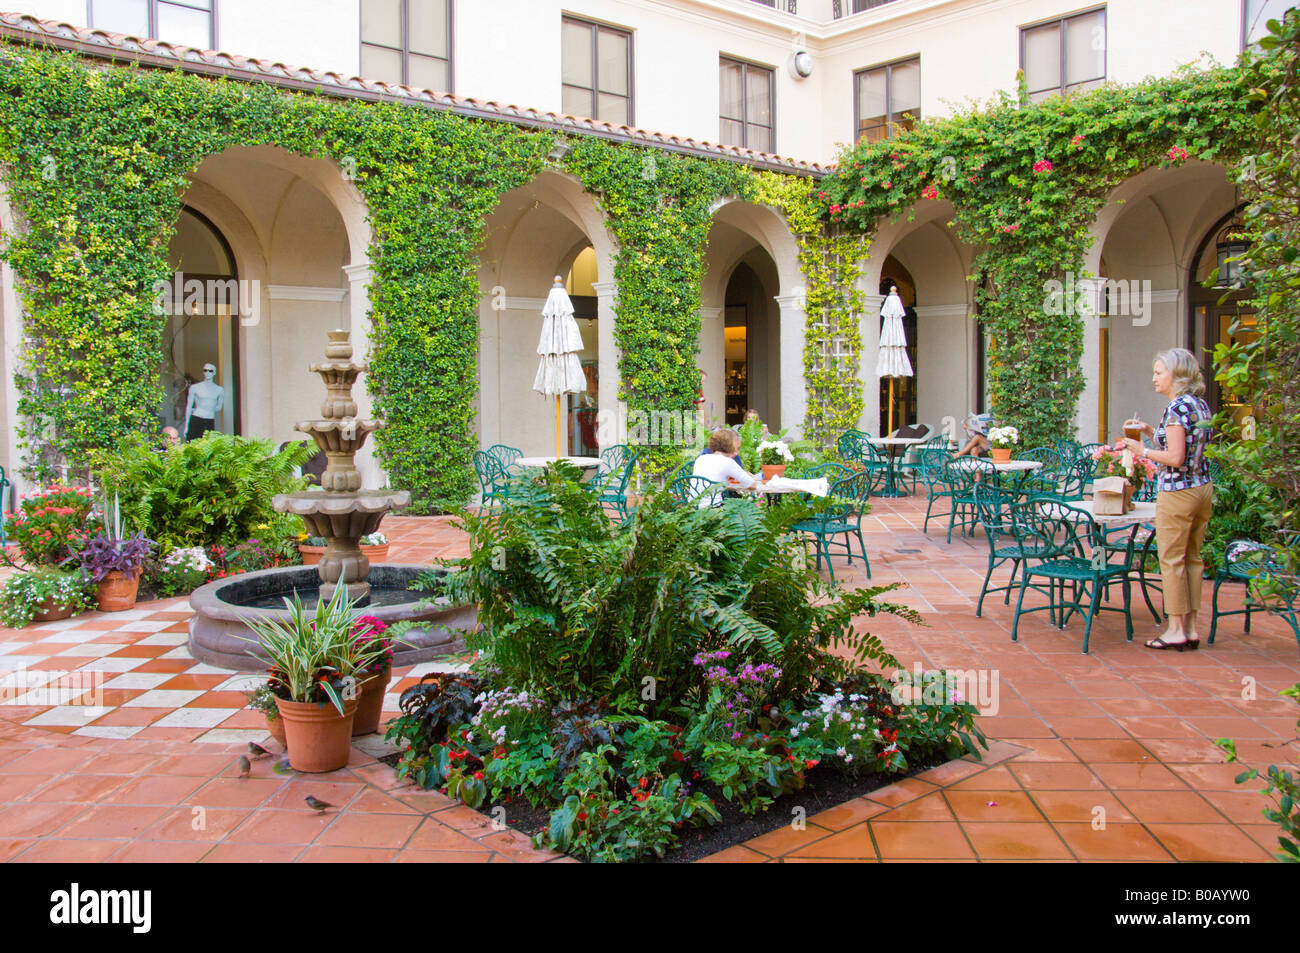 Interior Courtyard And Shops At The Breakers Hotel In West